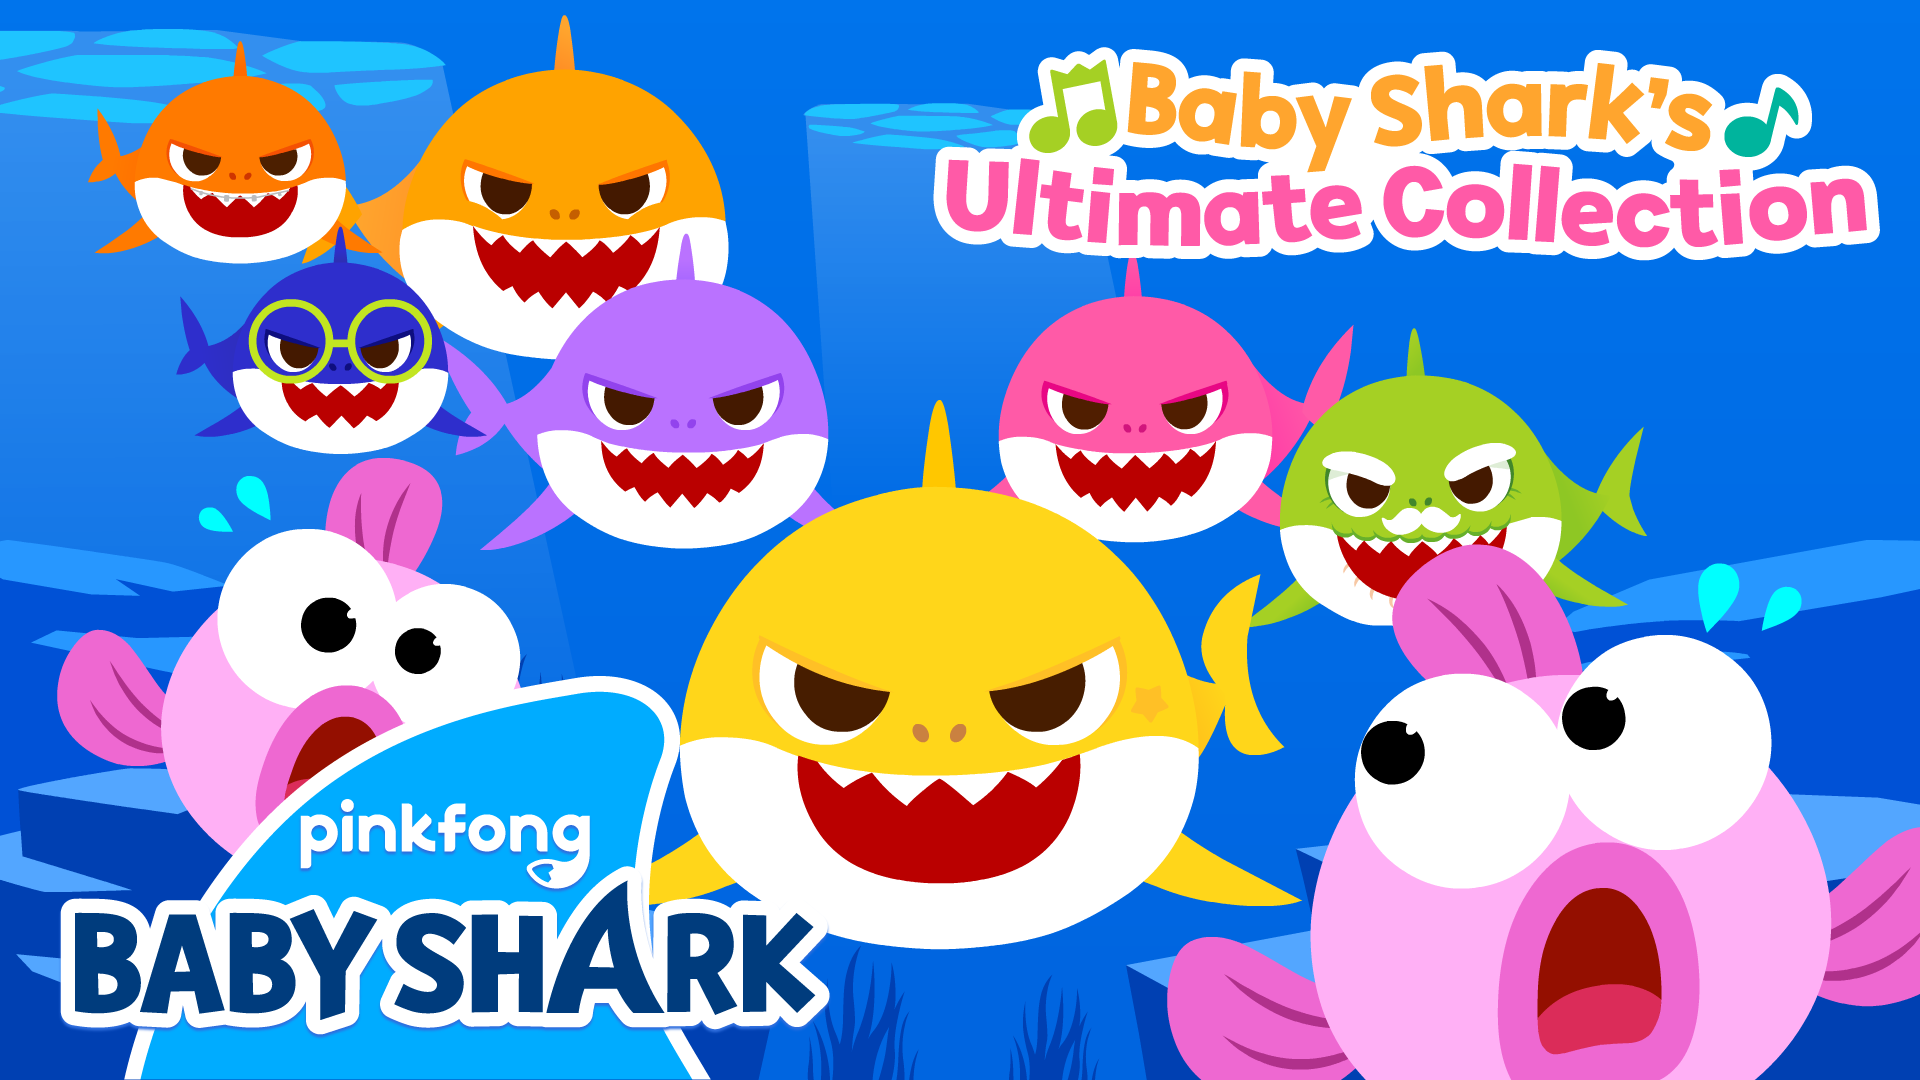 Pinkfong! Baby Shark's Ultimate Collection